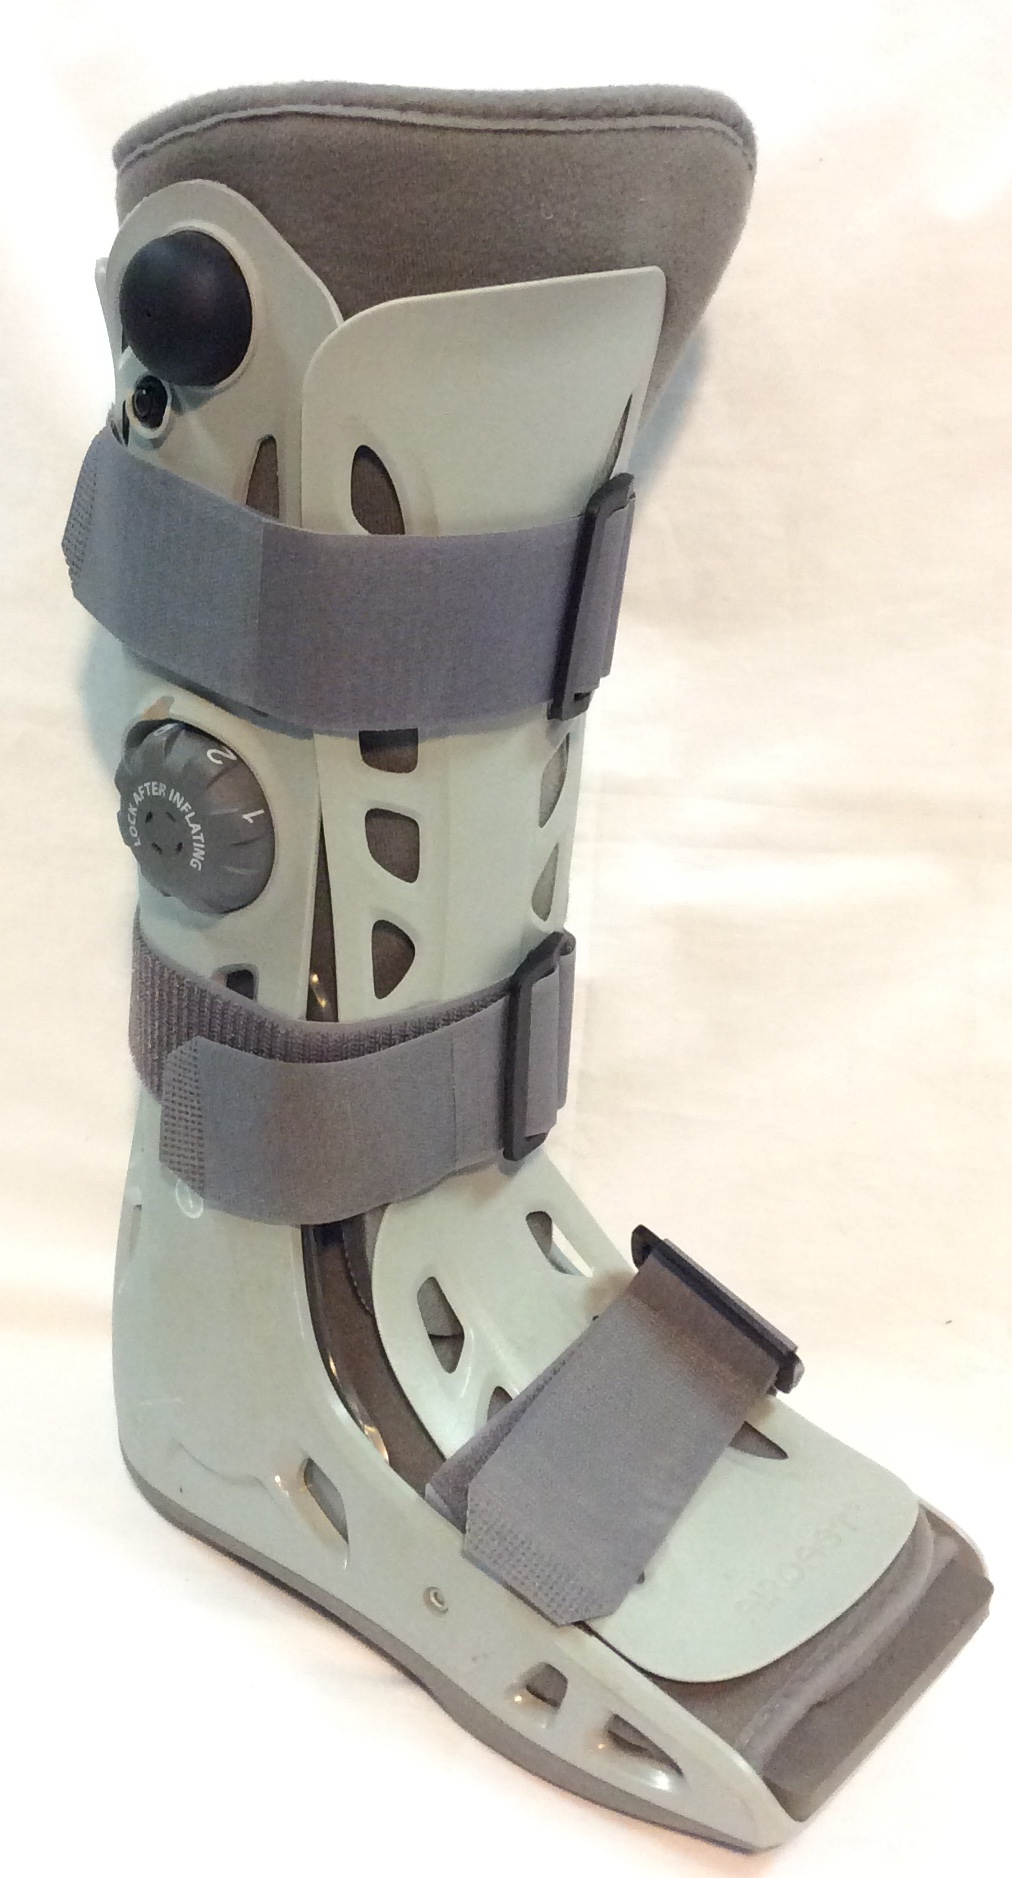 Aircast - Below knee, Medium size